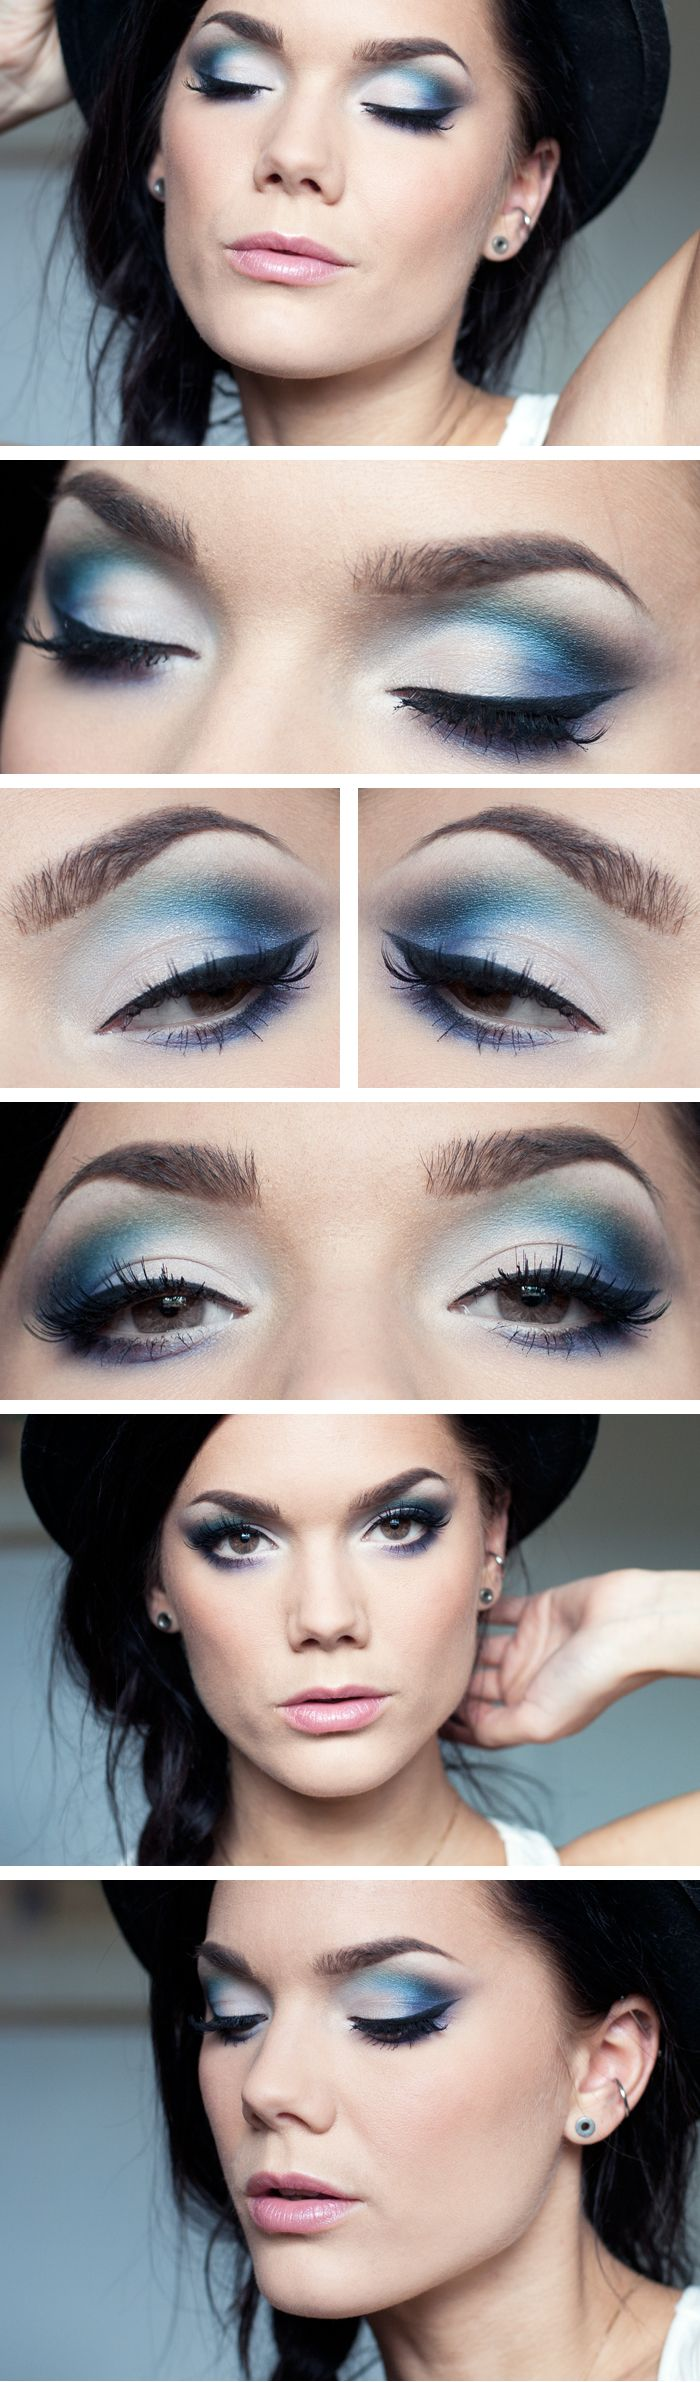 Linda Hallberg. I like how blue eye shadow makes her eyes look almost brown, while browns, greens, and purples make her eyes pop in bright blue. Ah the beauty of color pigments.